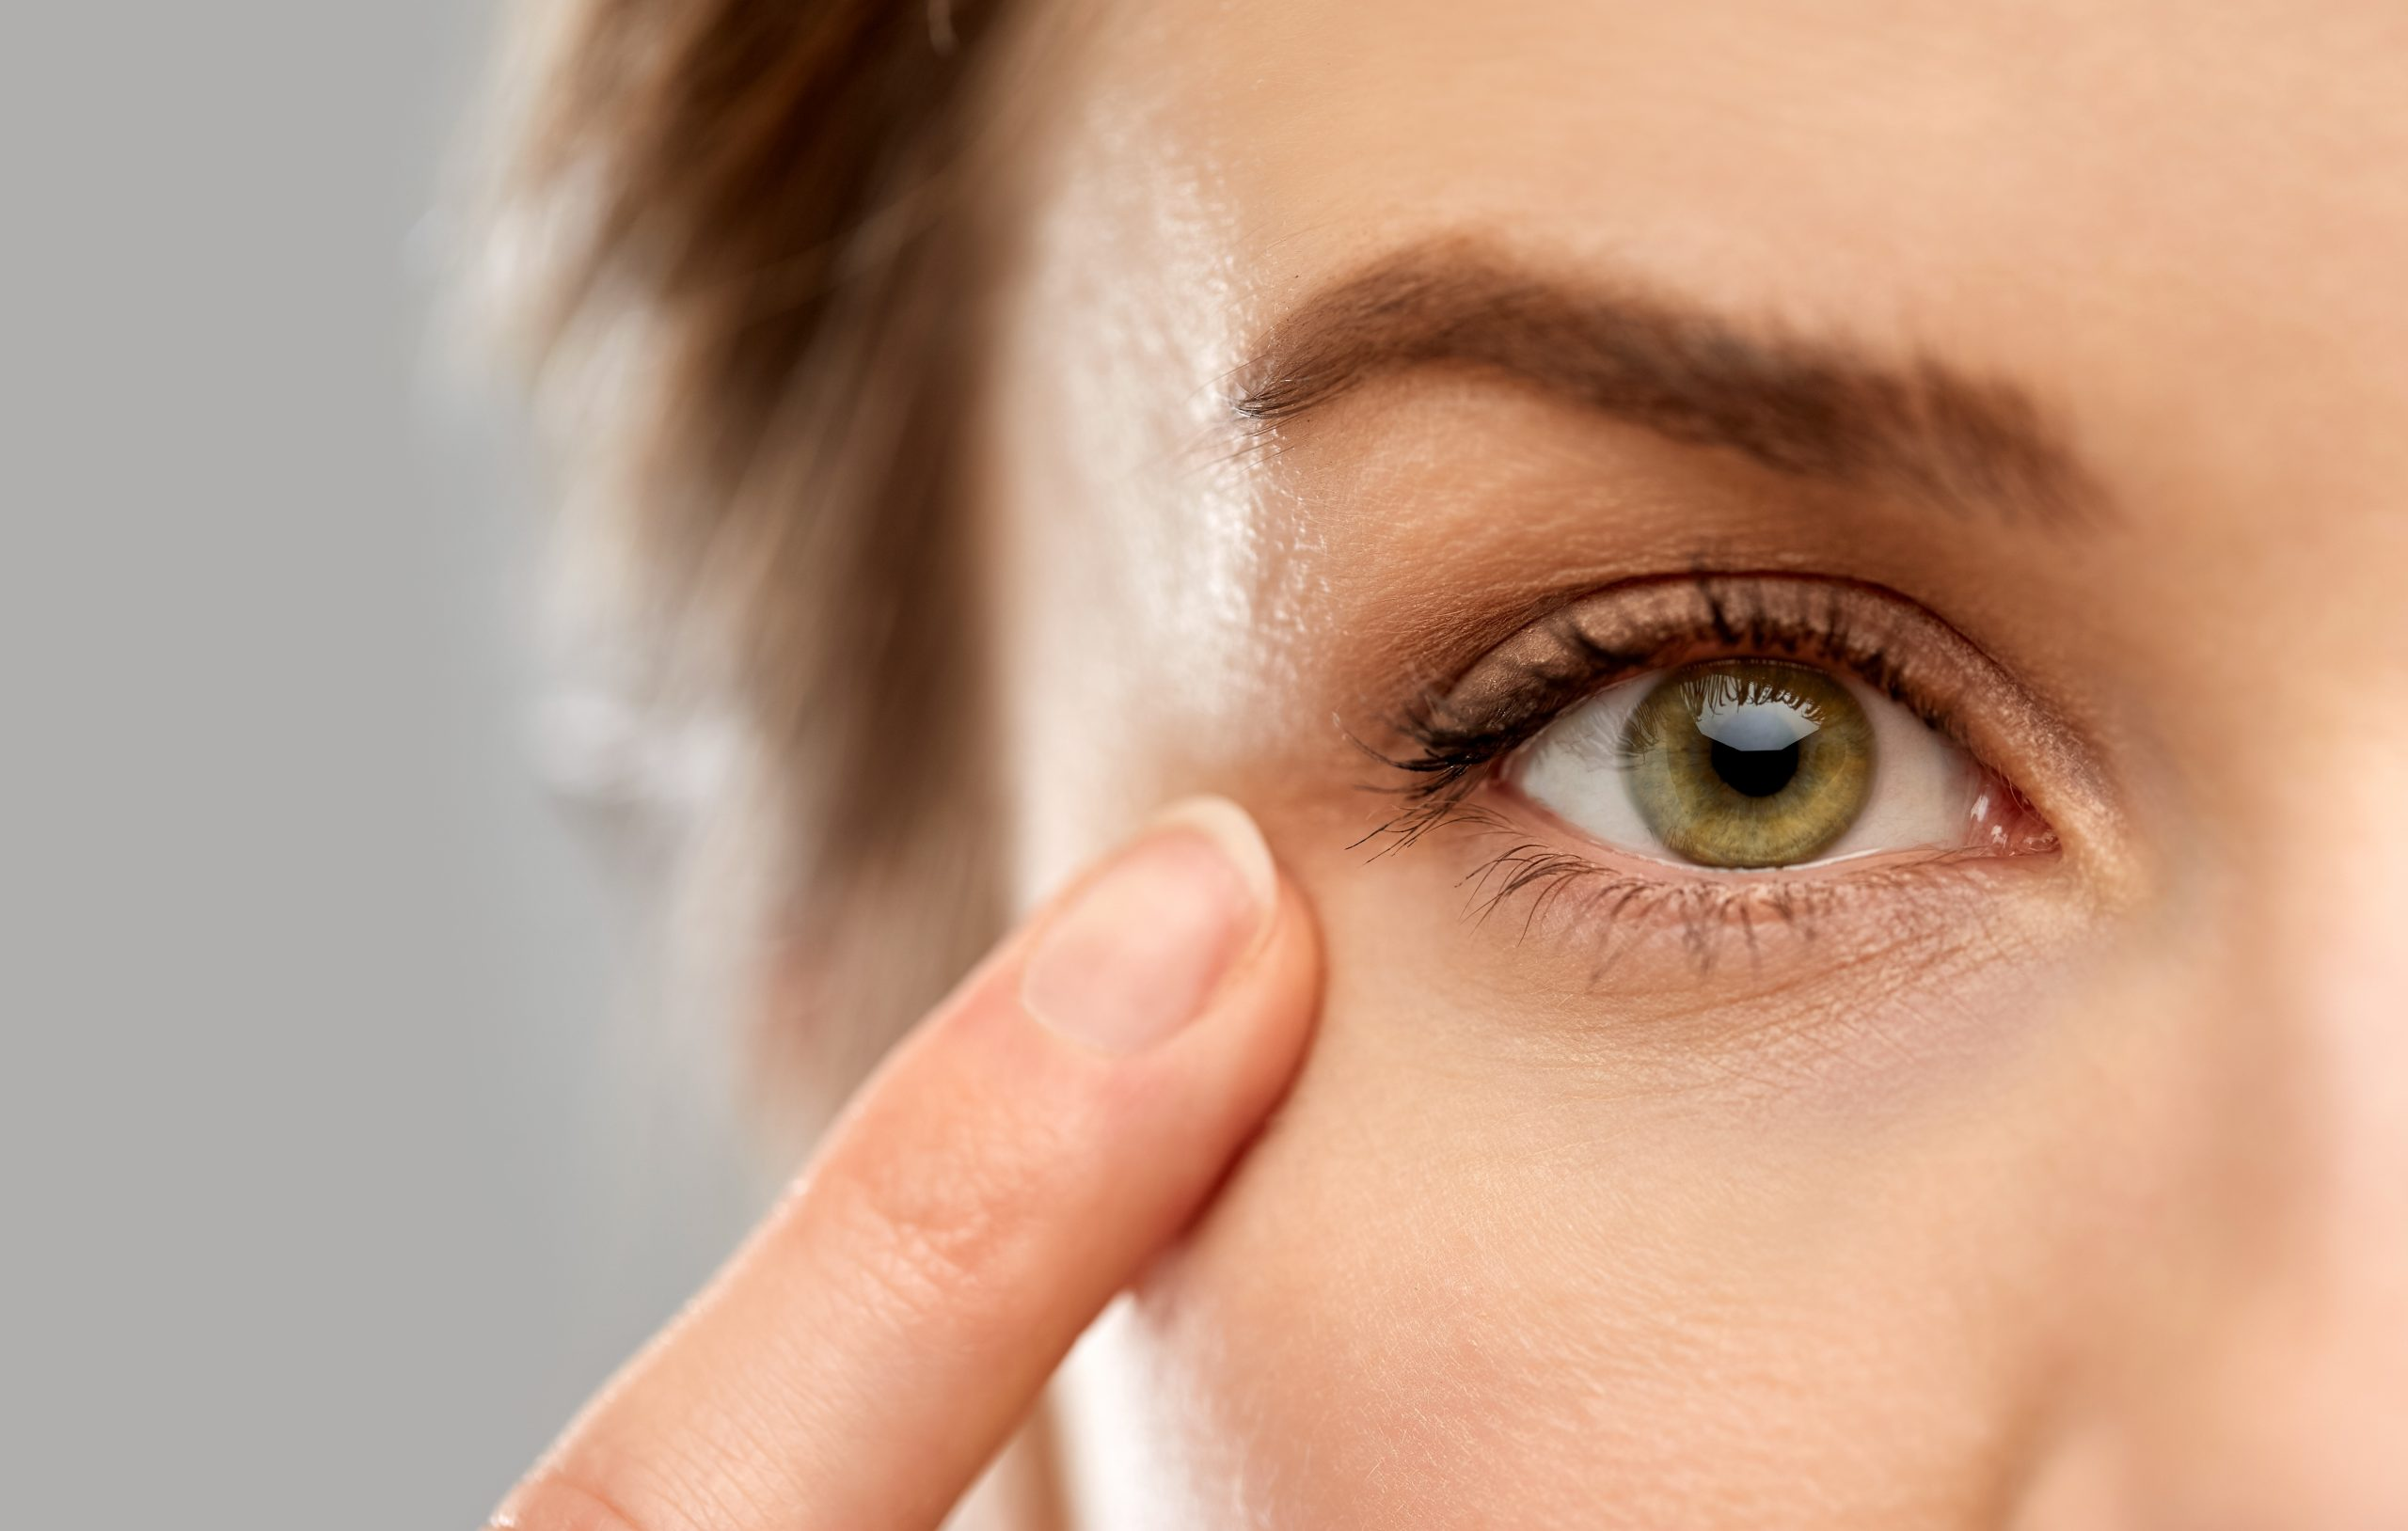 Female patient, eyes: How to get rid of hooded eyes?